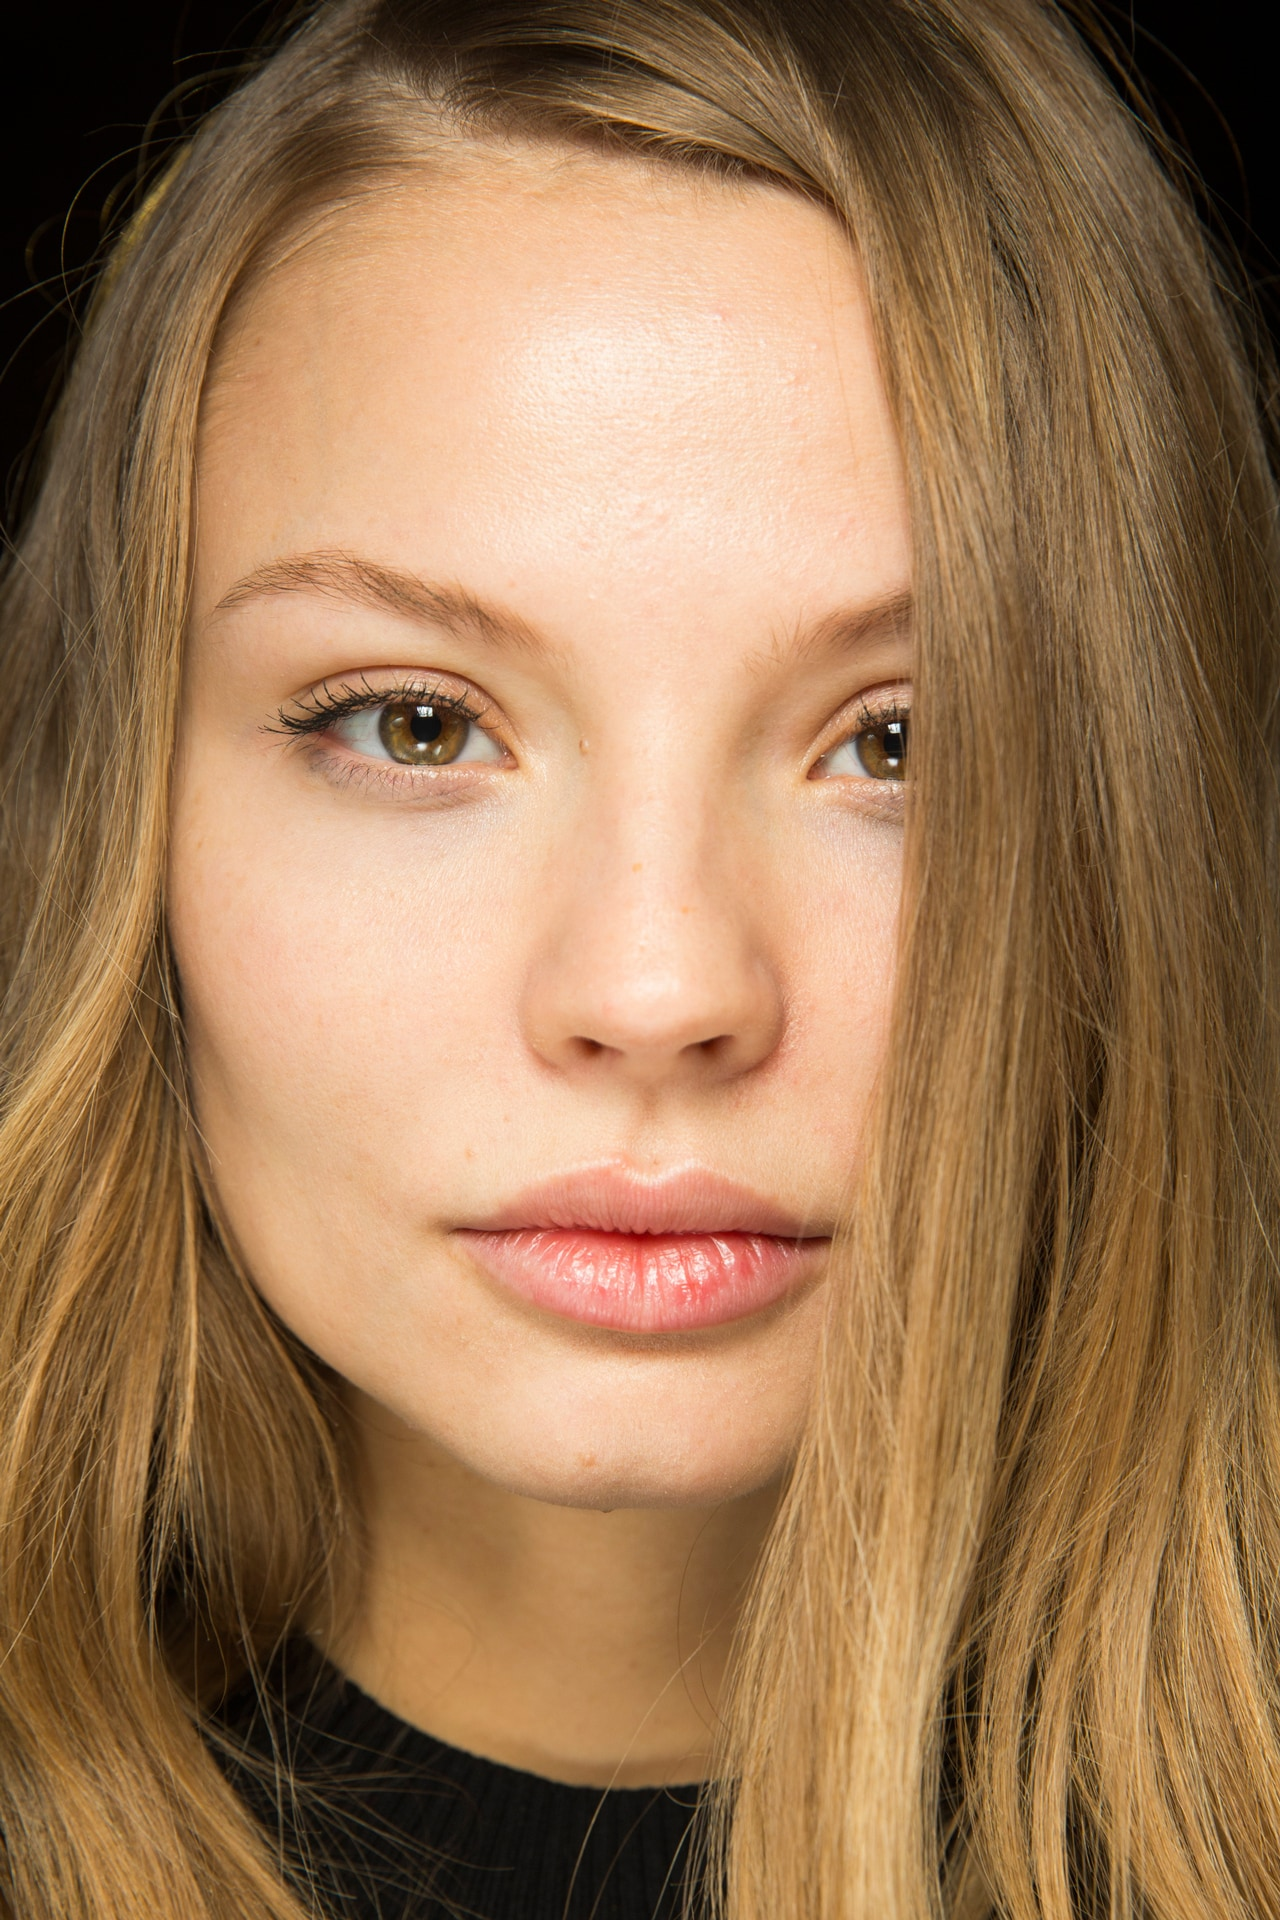 The foolproof trick that will ensure you know when your skincare is really doing what it promises